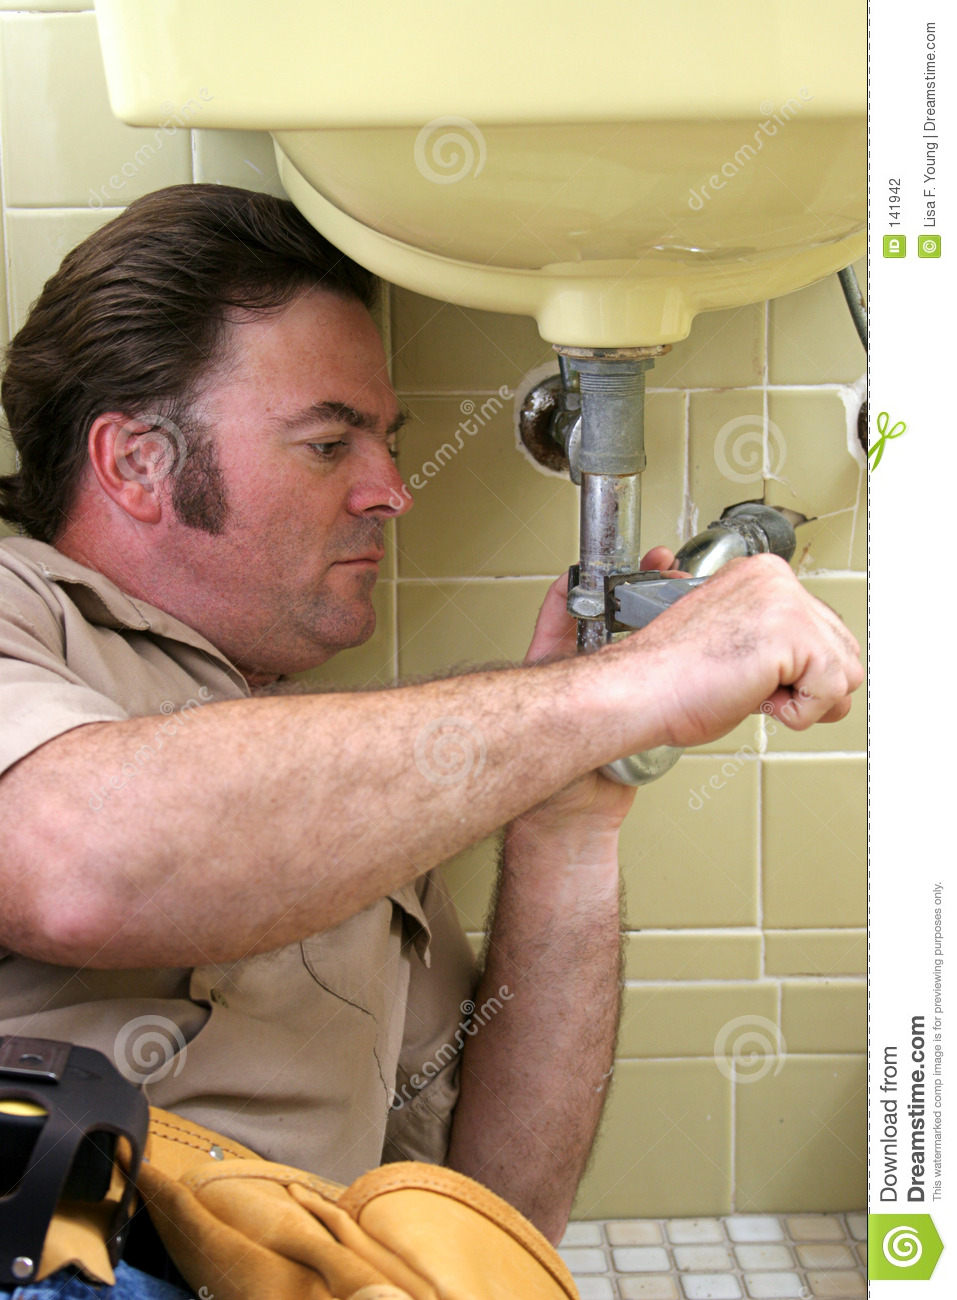 Plumber Using Pipe Wrench Stock Photography Image 141942